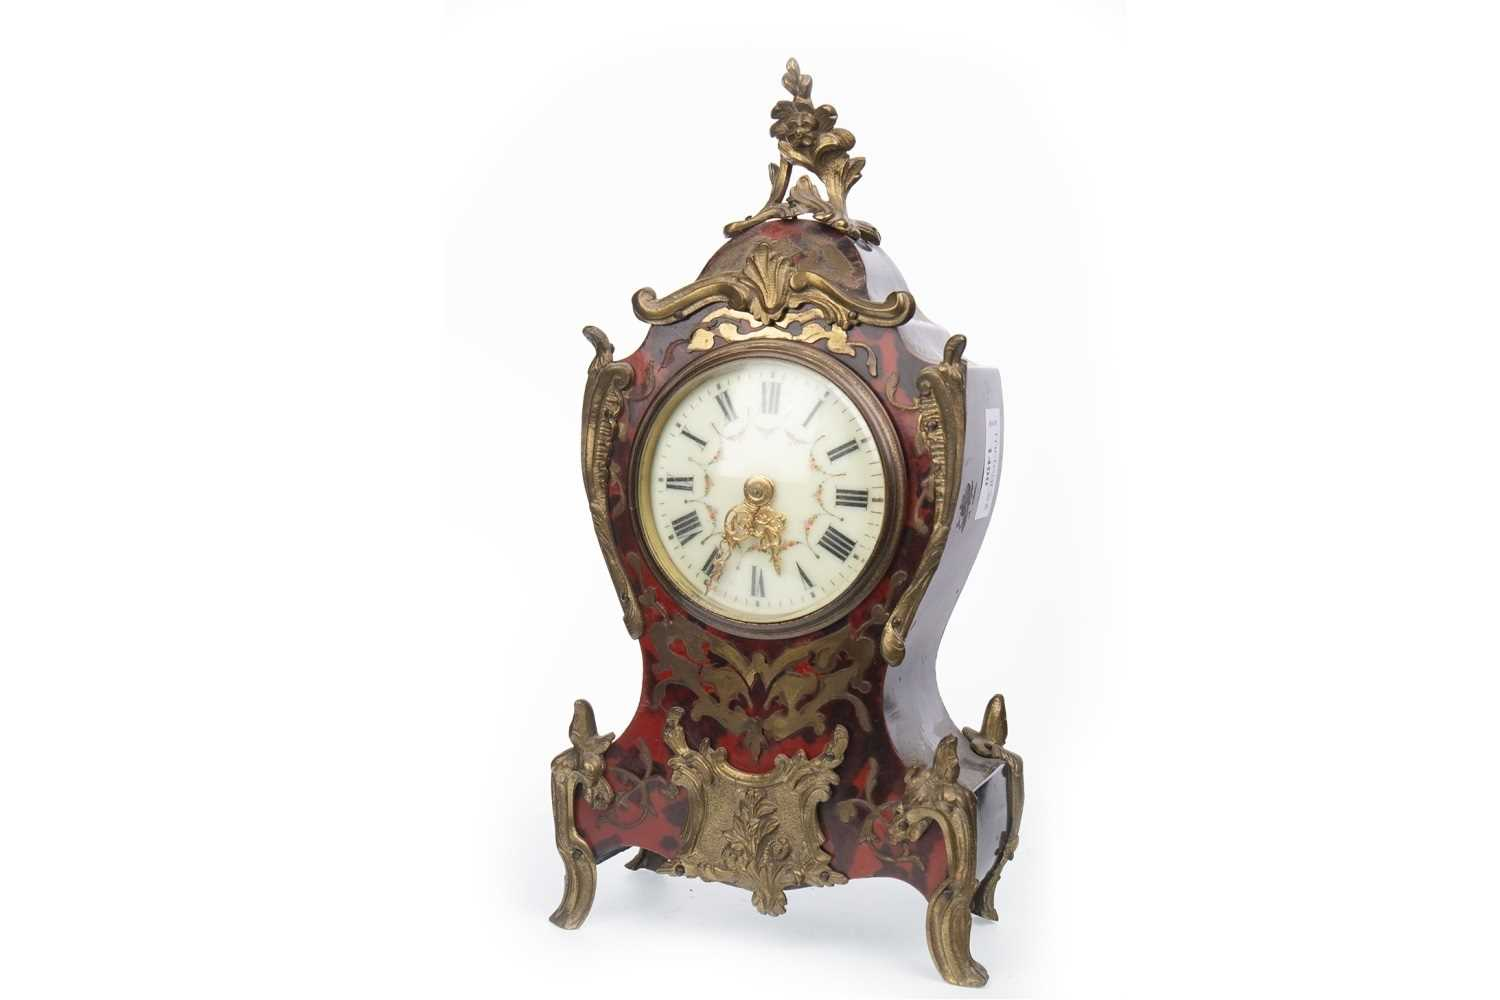 Lot 1400-A LATE 19TH CENTURY BOULLE MANTEL CLOCK